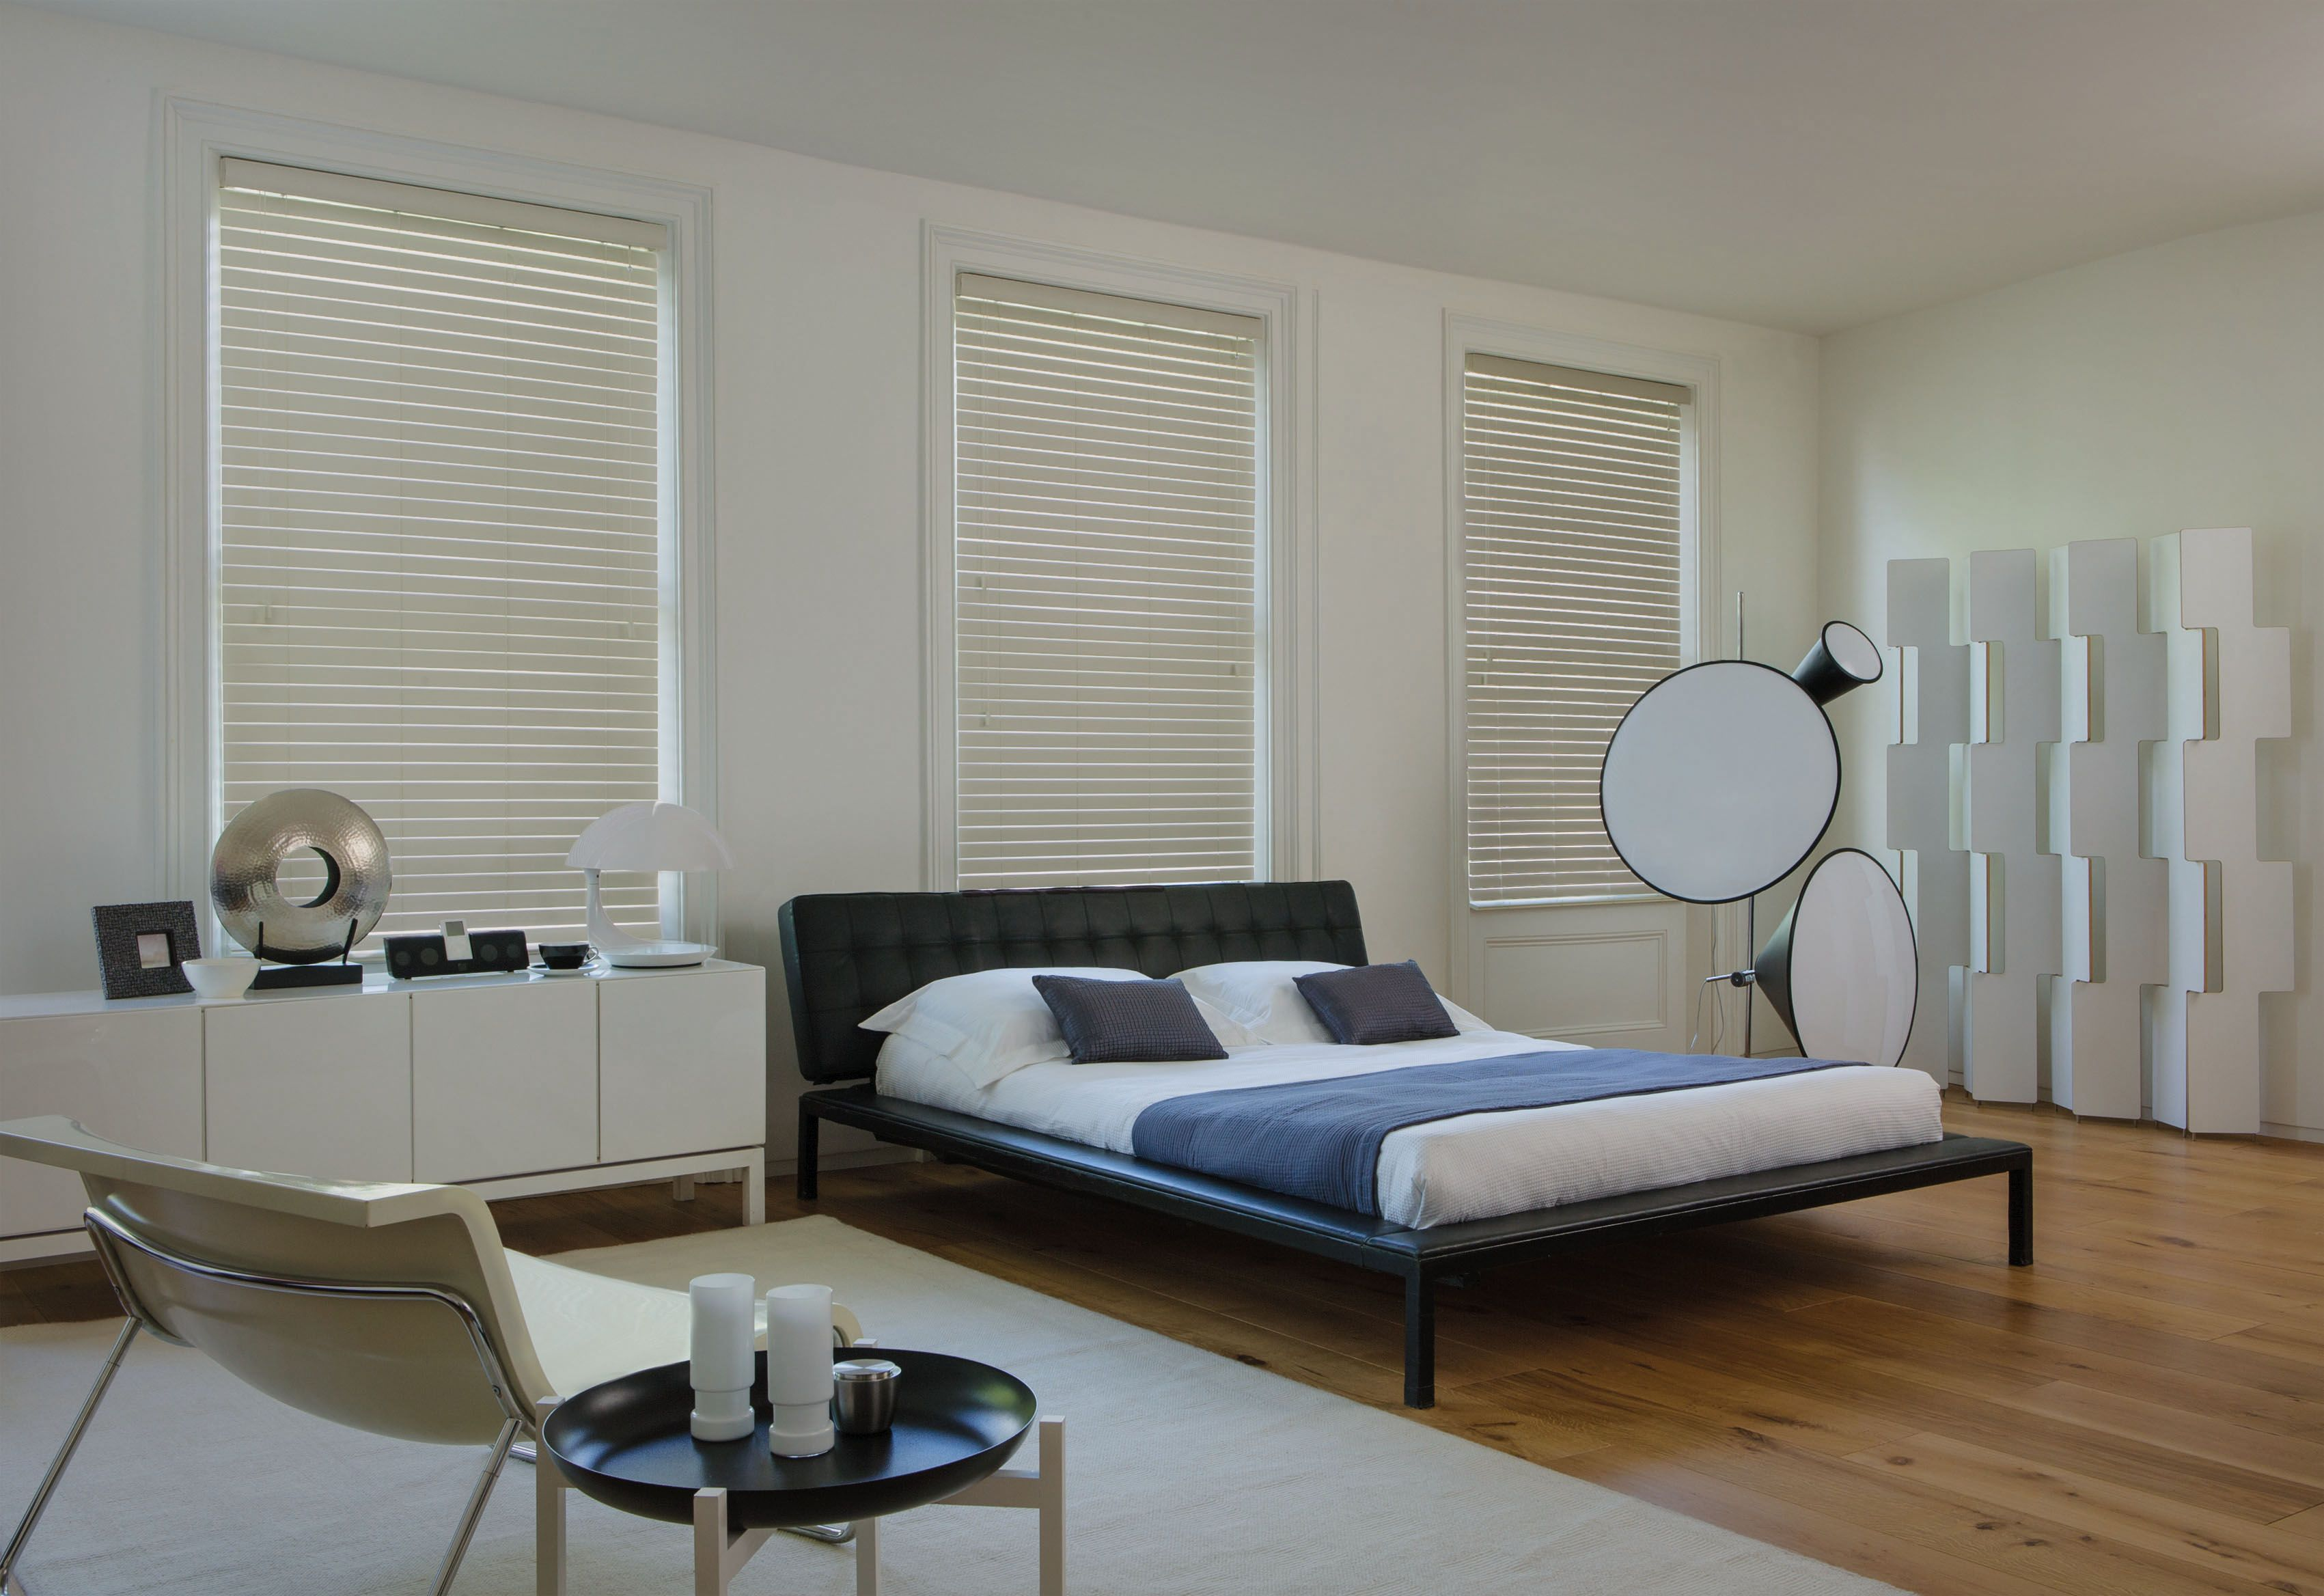 Our Wooden Blinds Look Gorgeous In Any Style Of Bedroom. #woodenblinds  #colourblinds #home #interiordesign #bedroomblinds Please Visit Us At ...